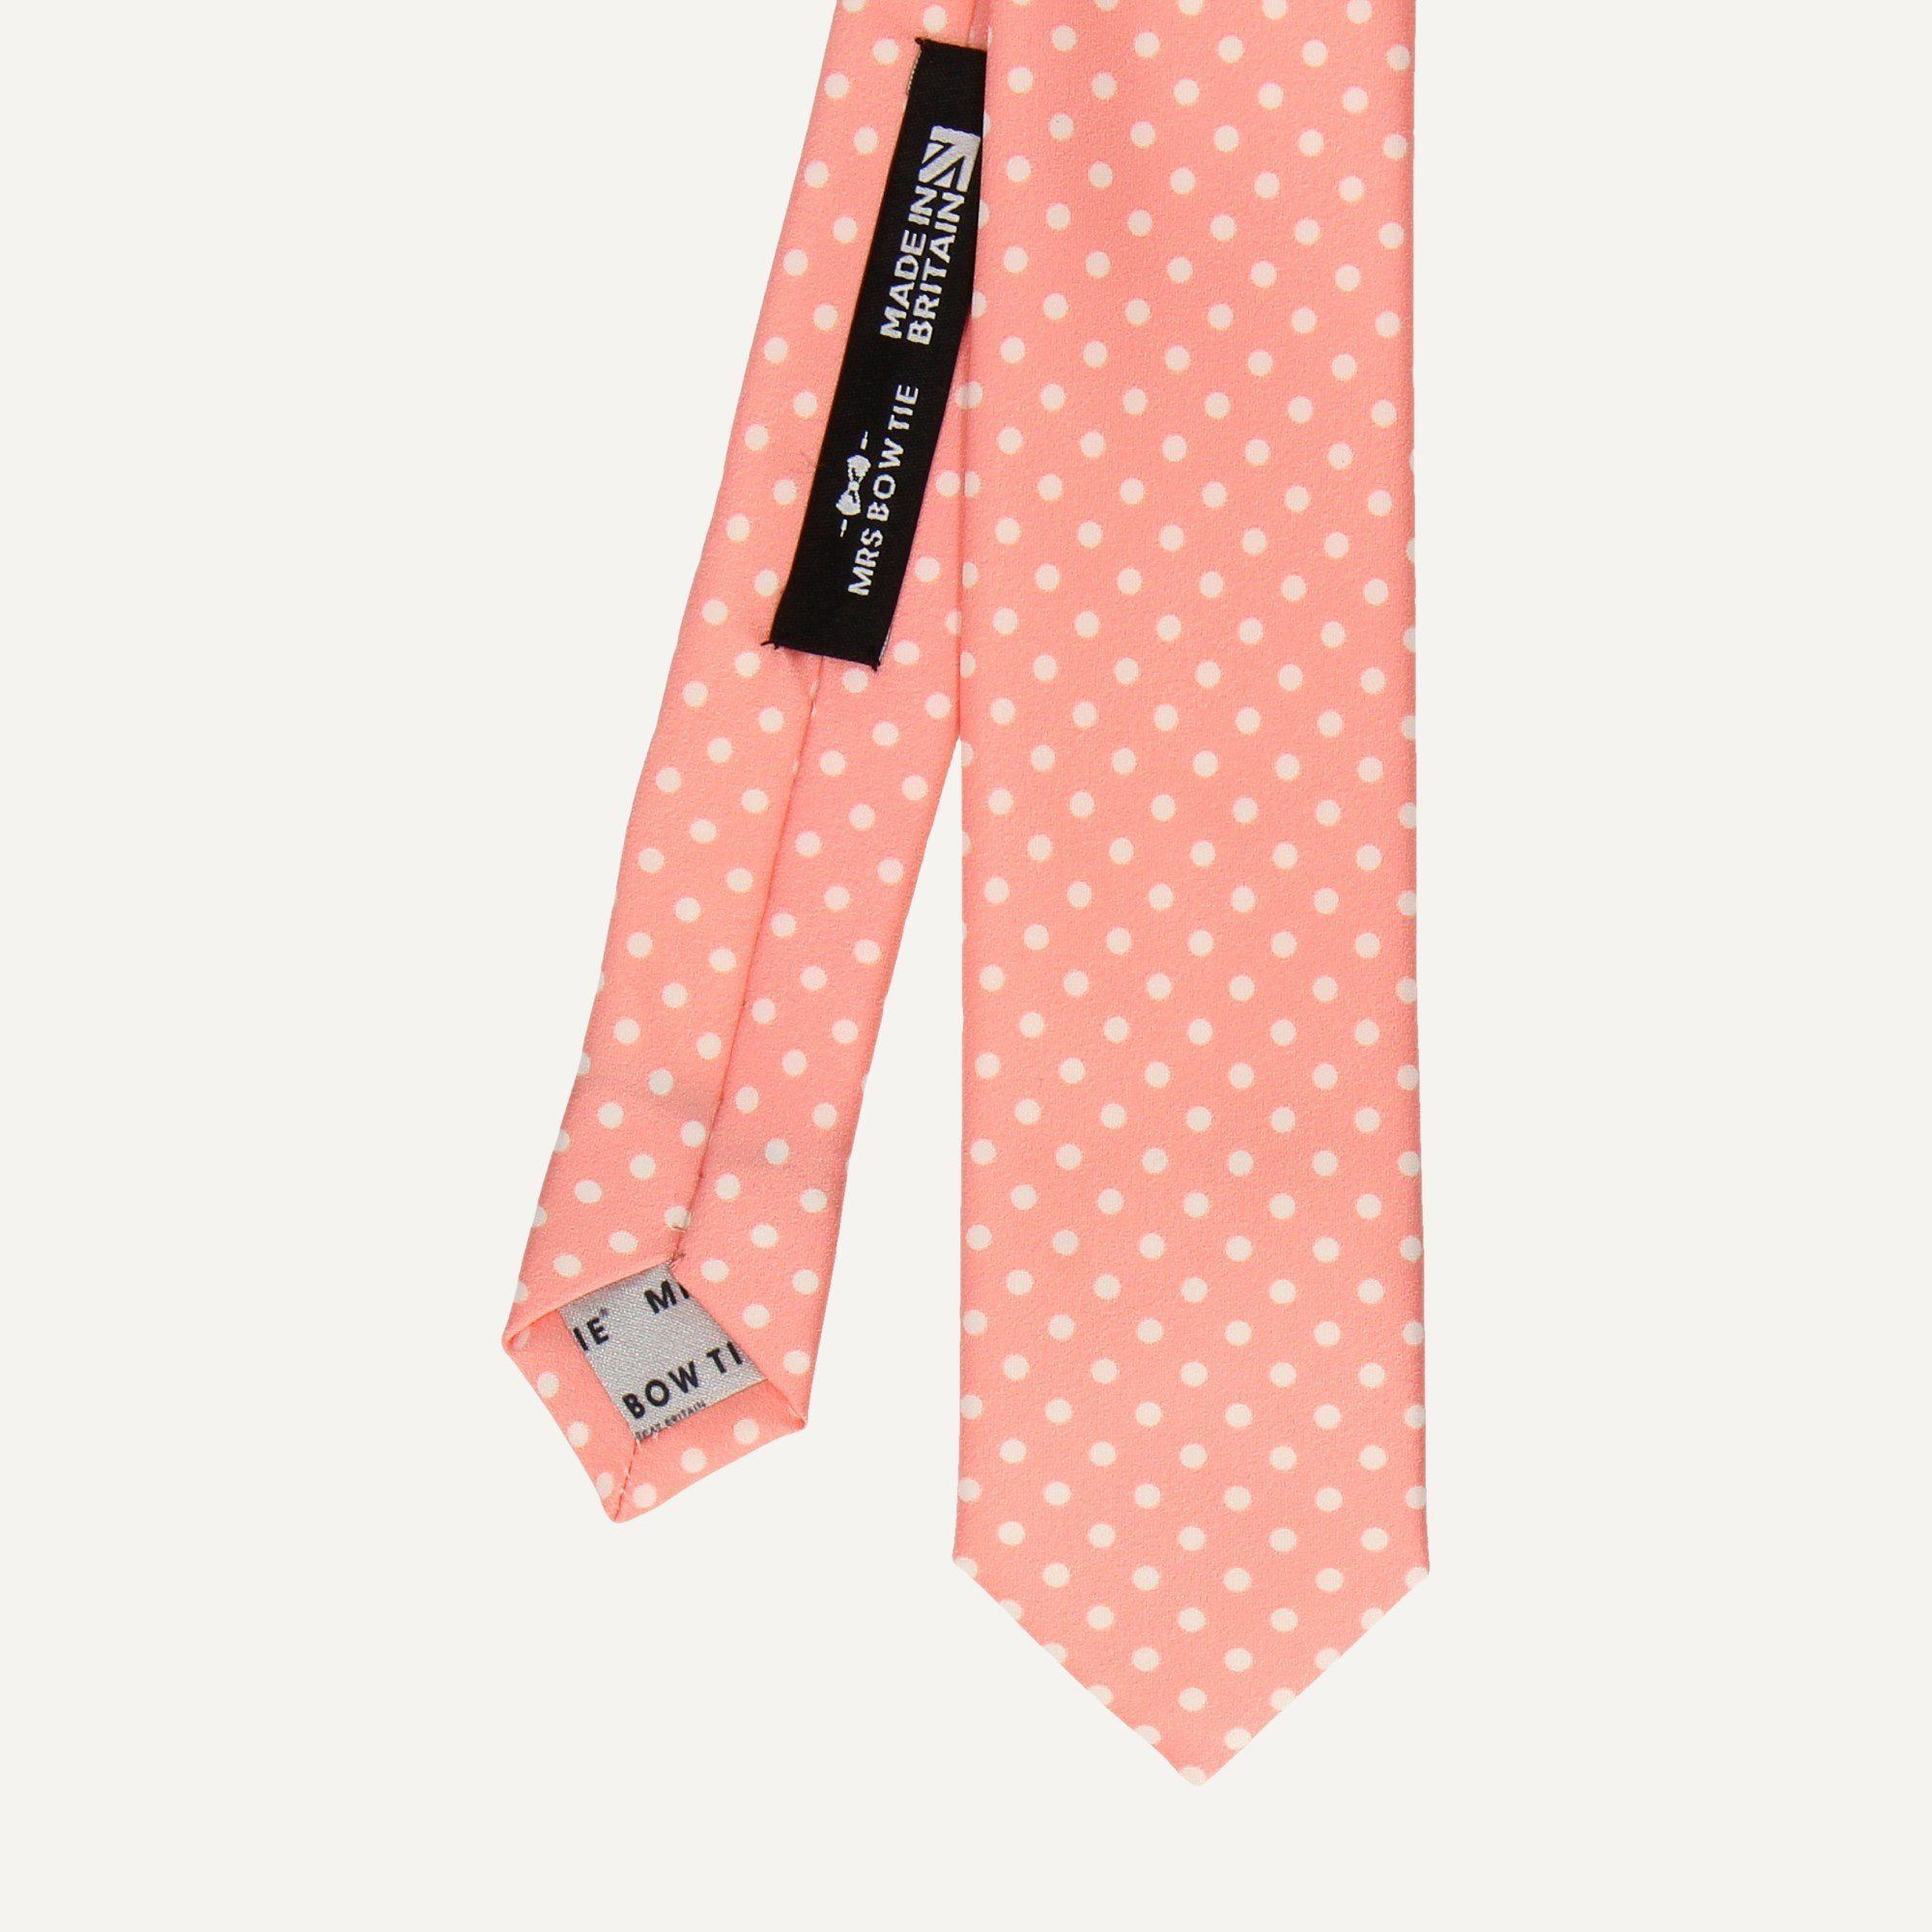 White Dots in Soft Coral Tie